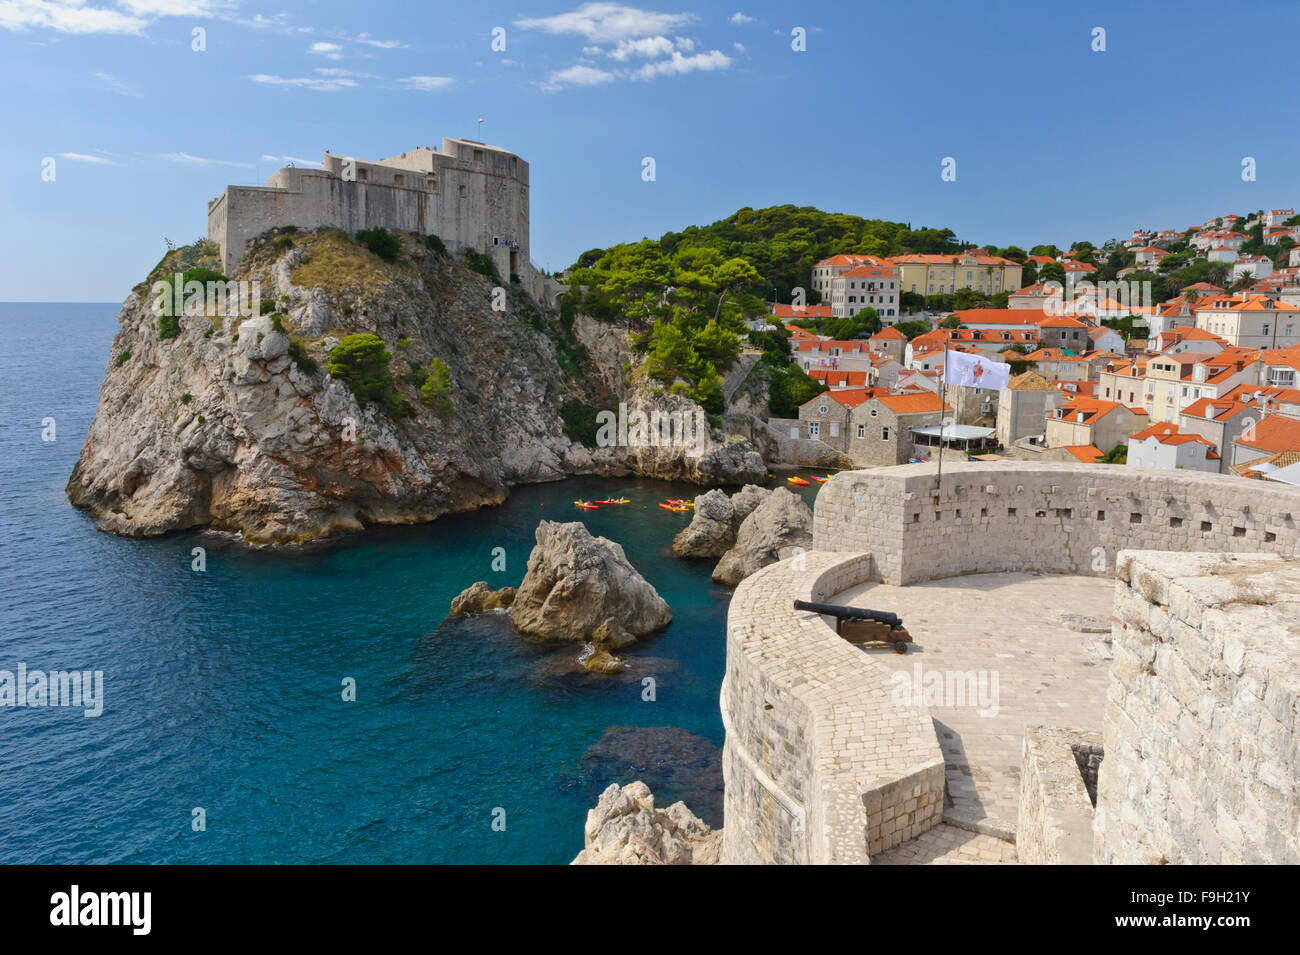 Fort Lovrijenac or St. Lawrence Fortress perch on a huge rock facing the sea, Dubrovnik, Croatia. Stock Photo